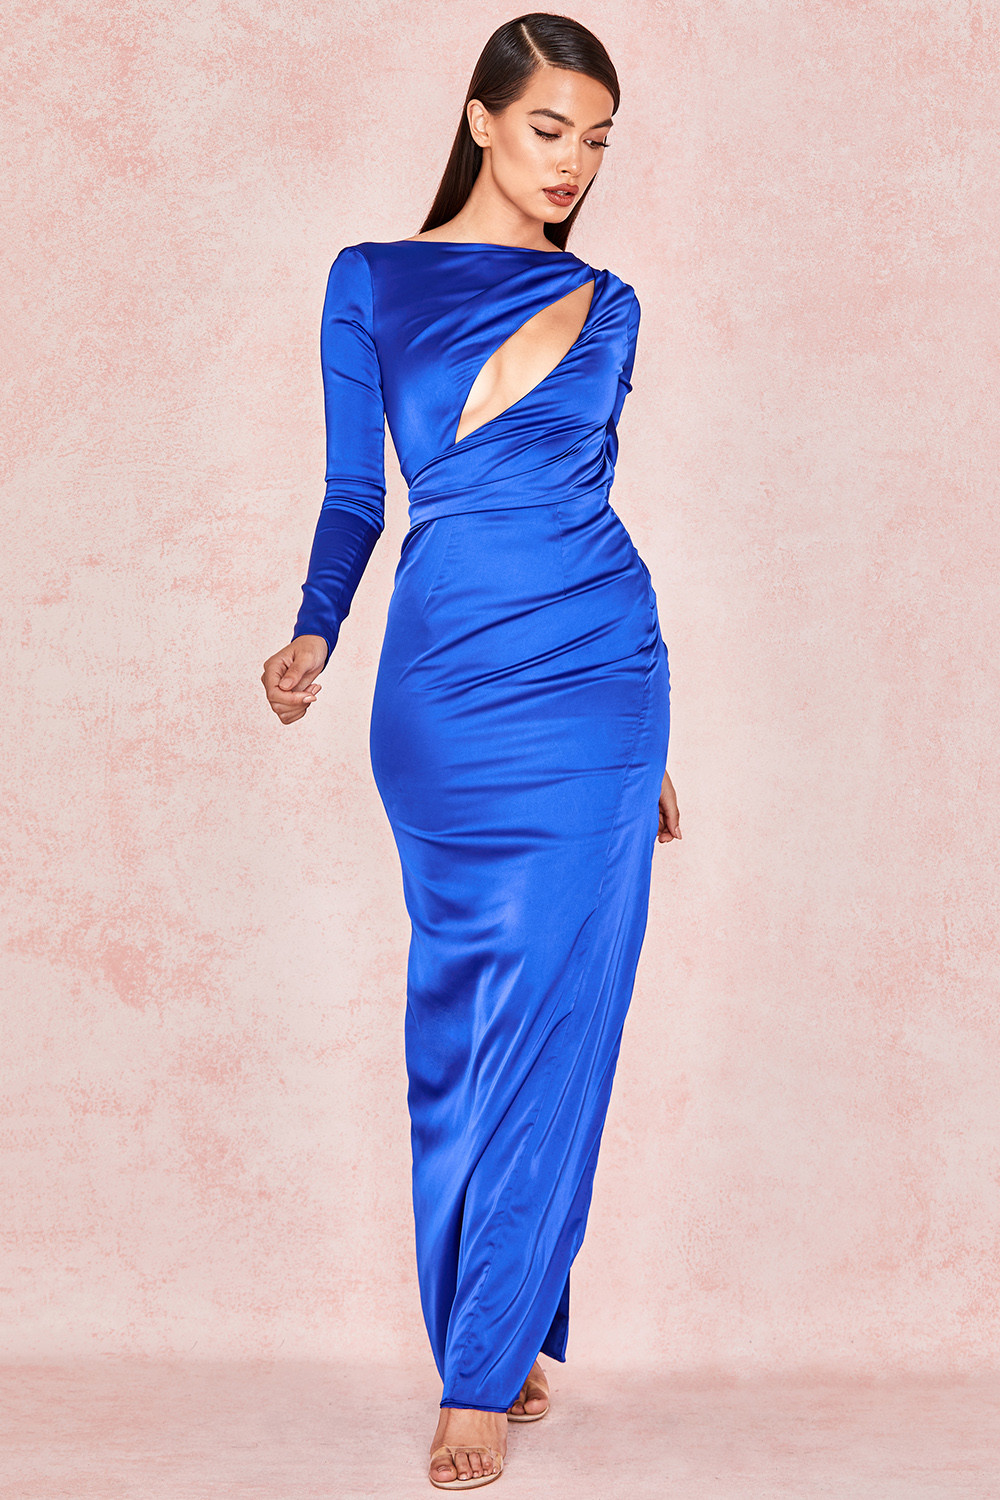 bf069ccd74b Salome Electric Blue Satin Open Front Maxi Dress. View larger image. View  larger image. View larger image